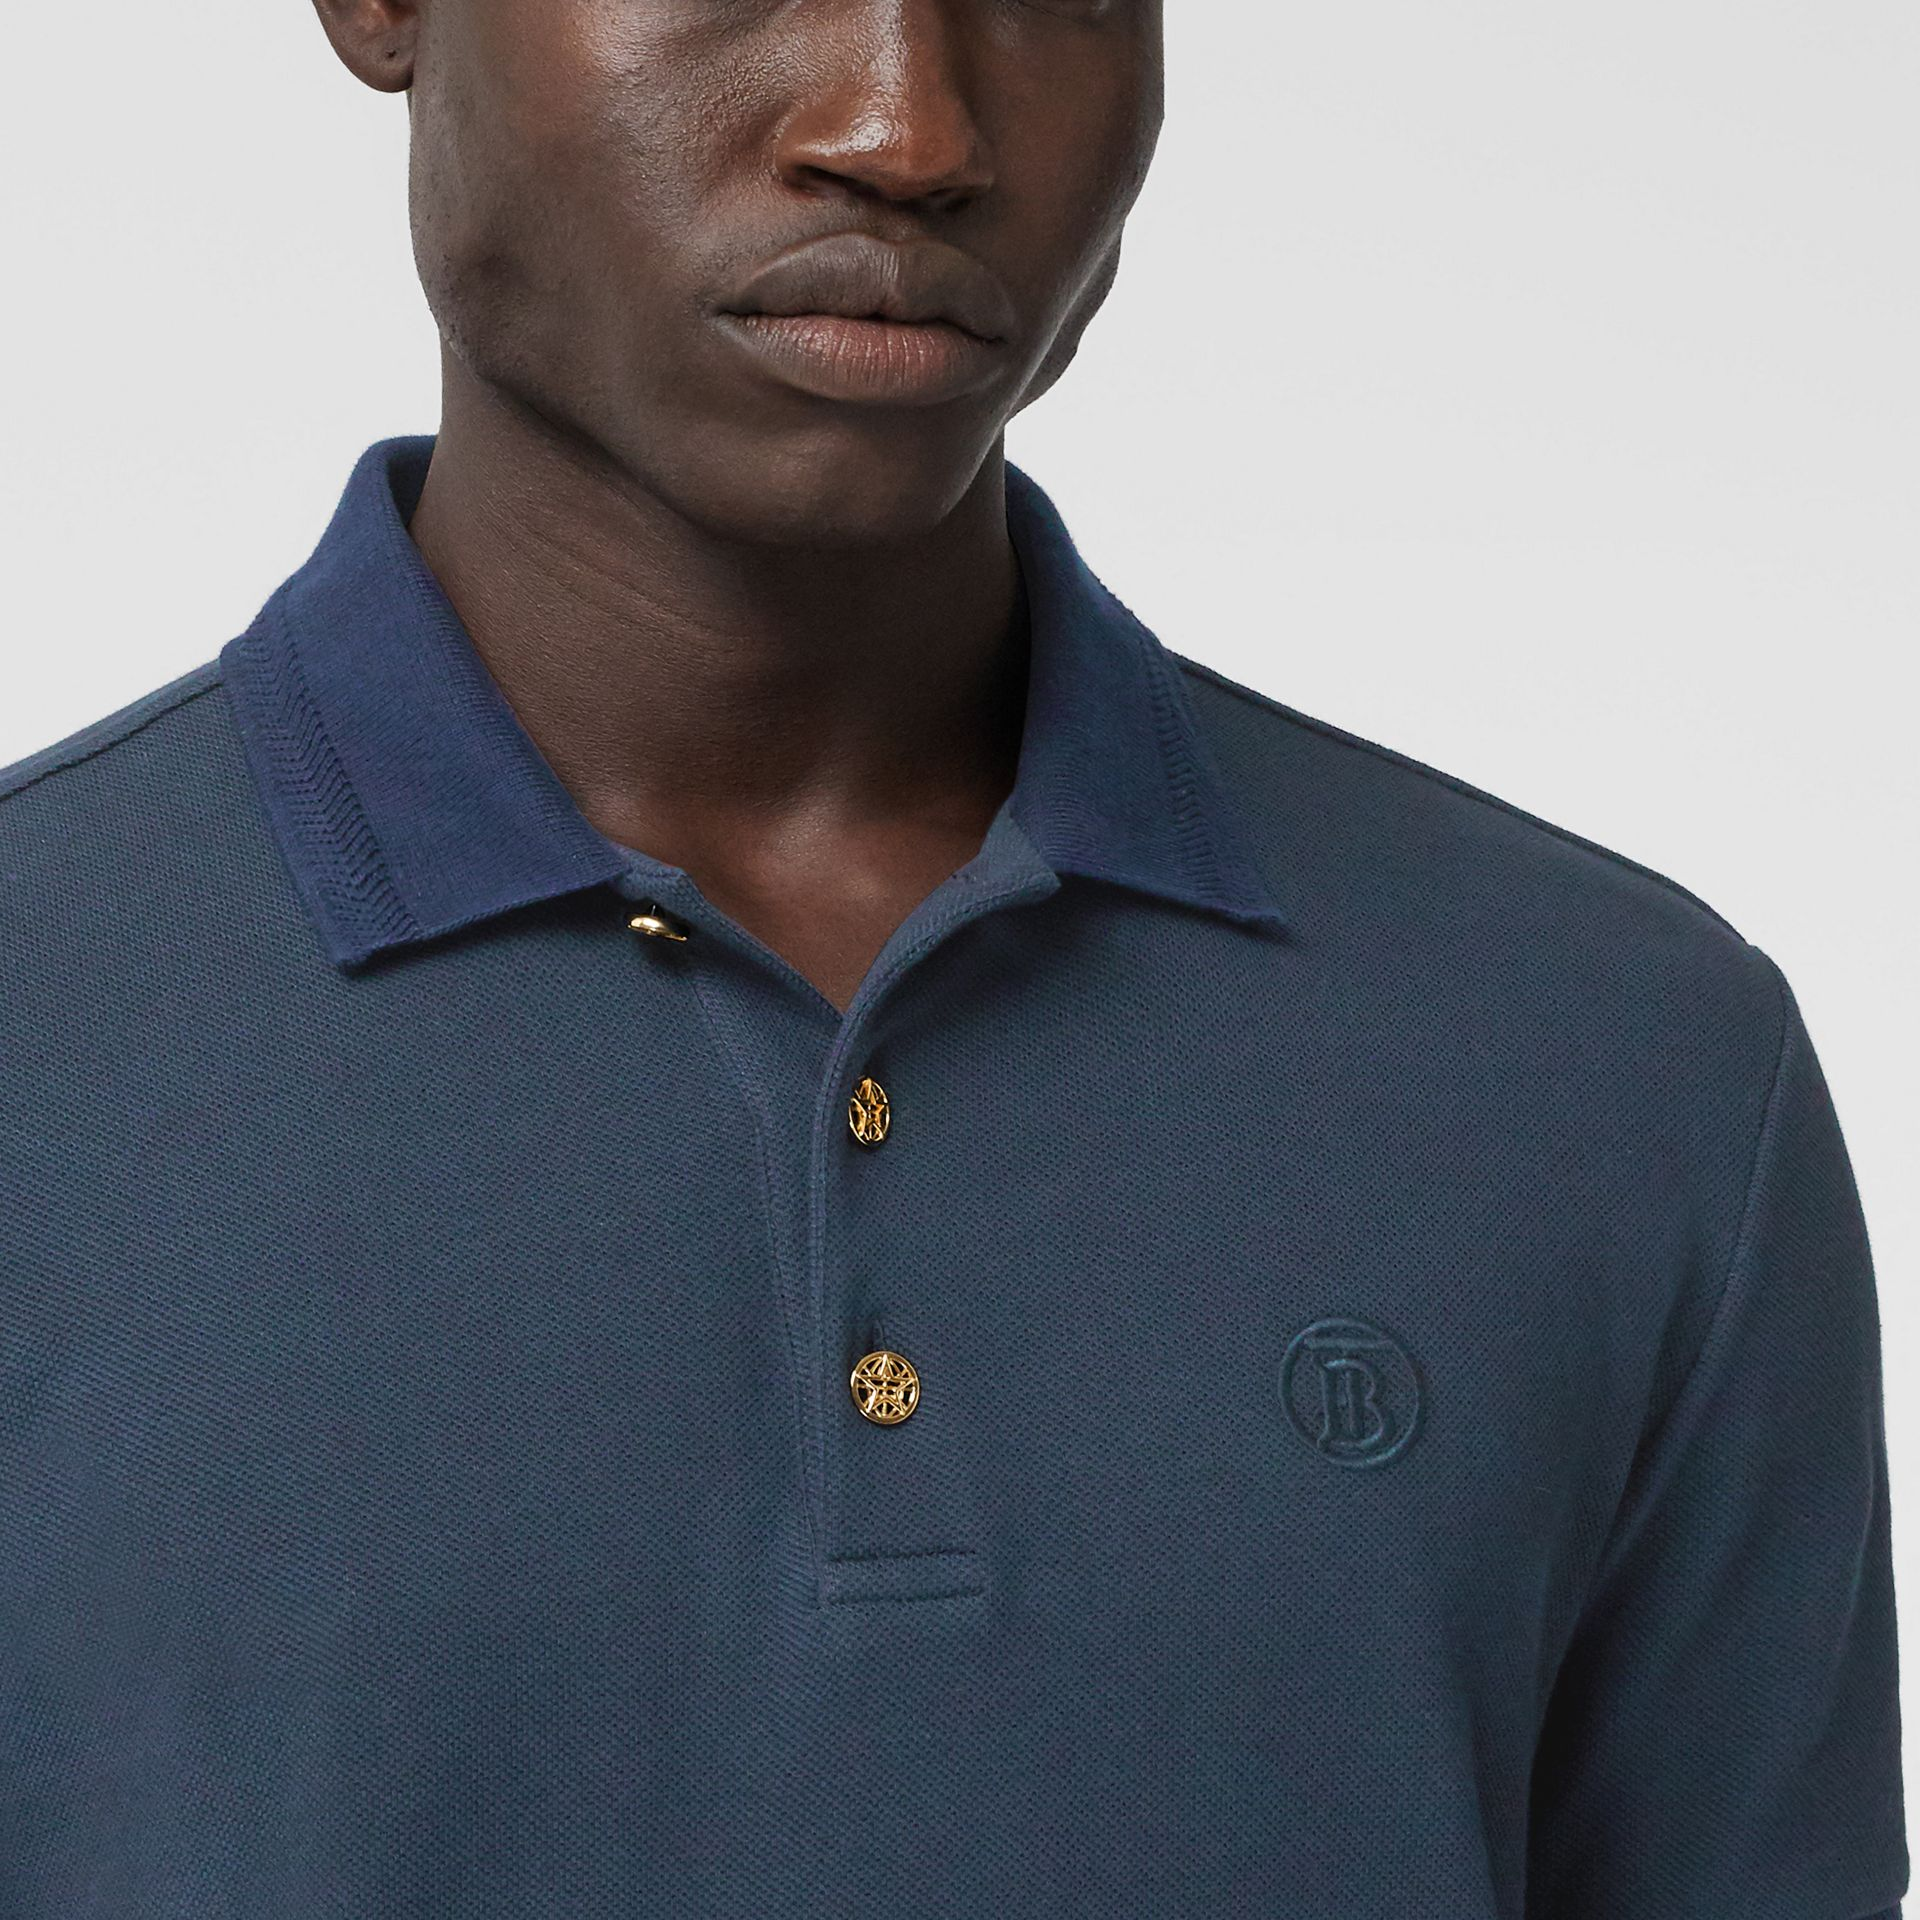 Button Detail Cotton Piqué Polo Shirt in Navy - Men | Burberry - gallery image 1